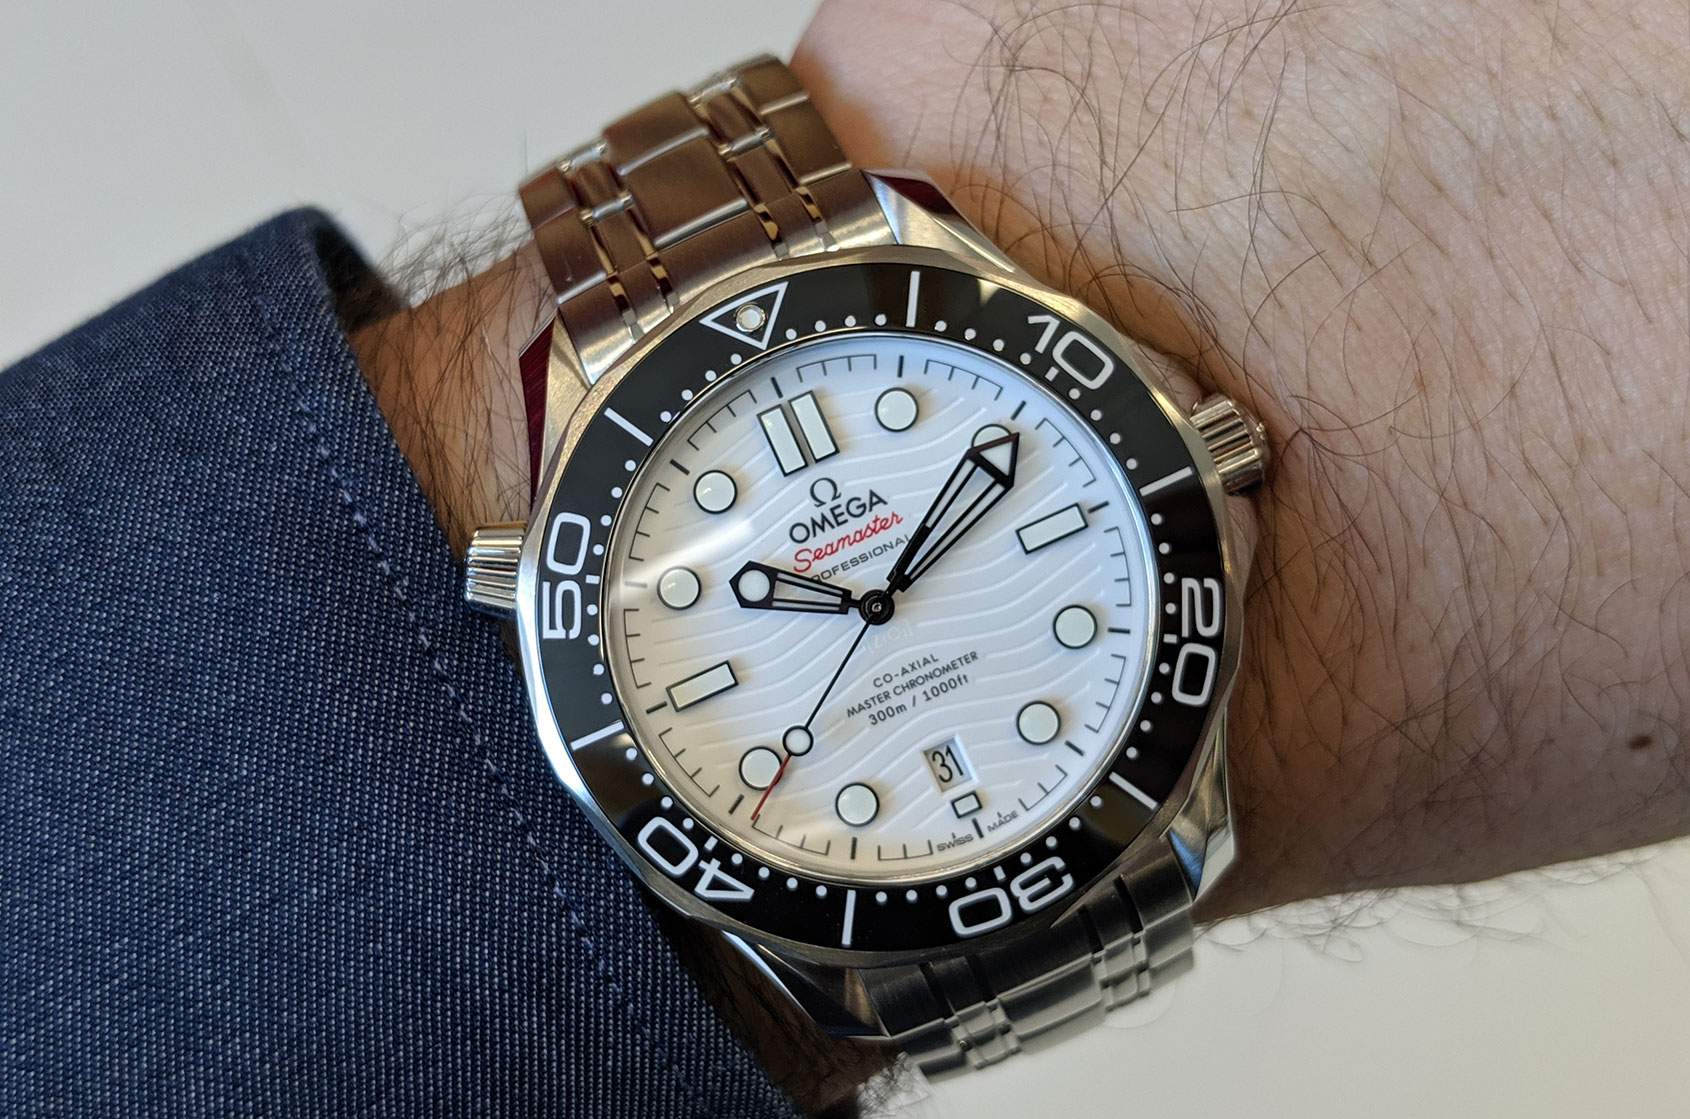 Omega Seamaster Diver 300M sleeper hits of 2019